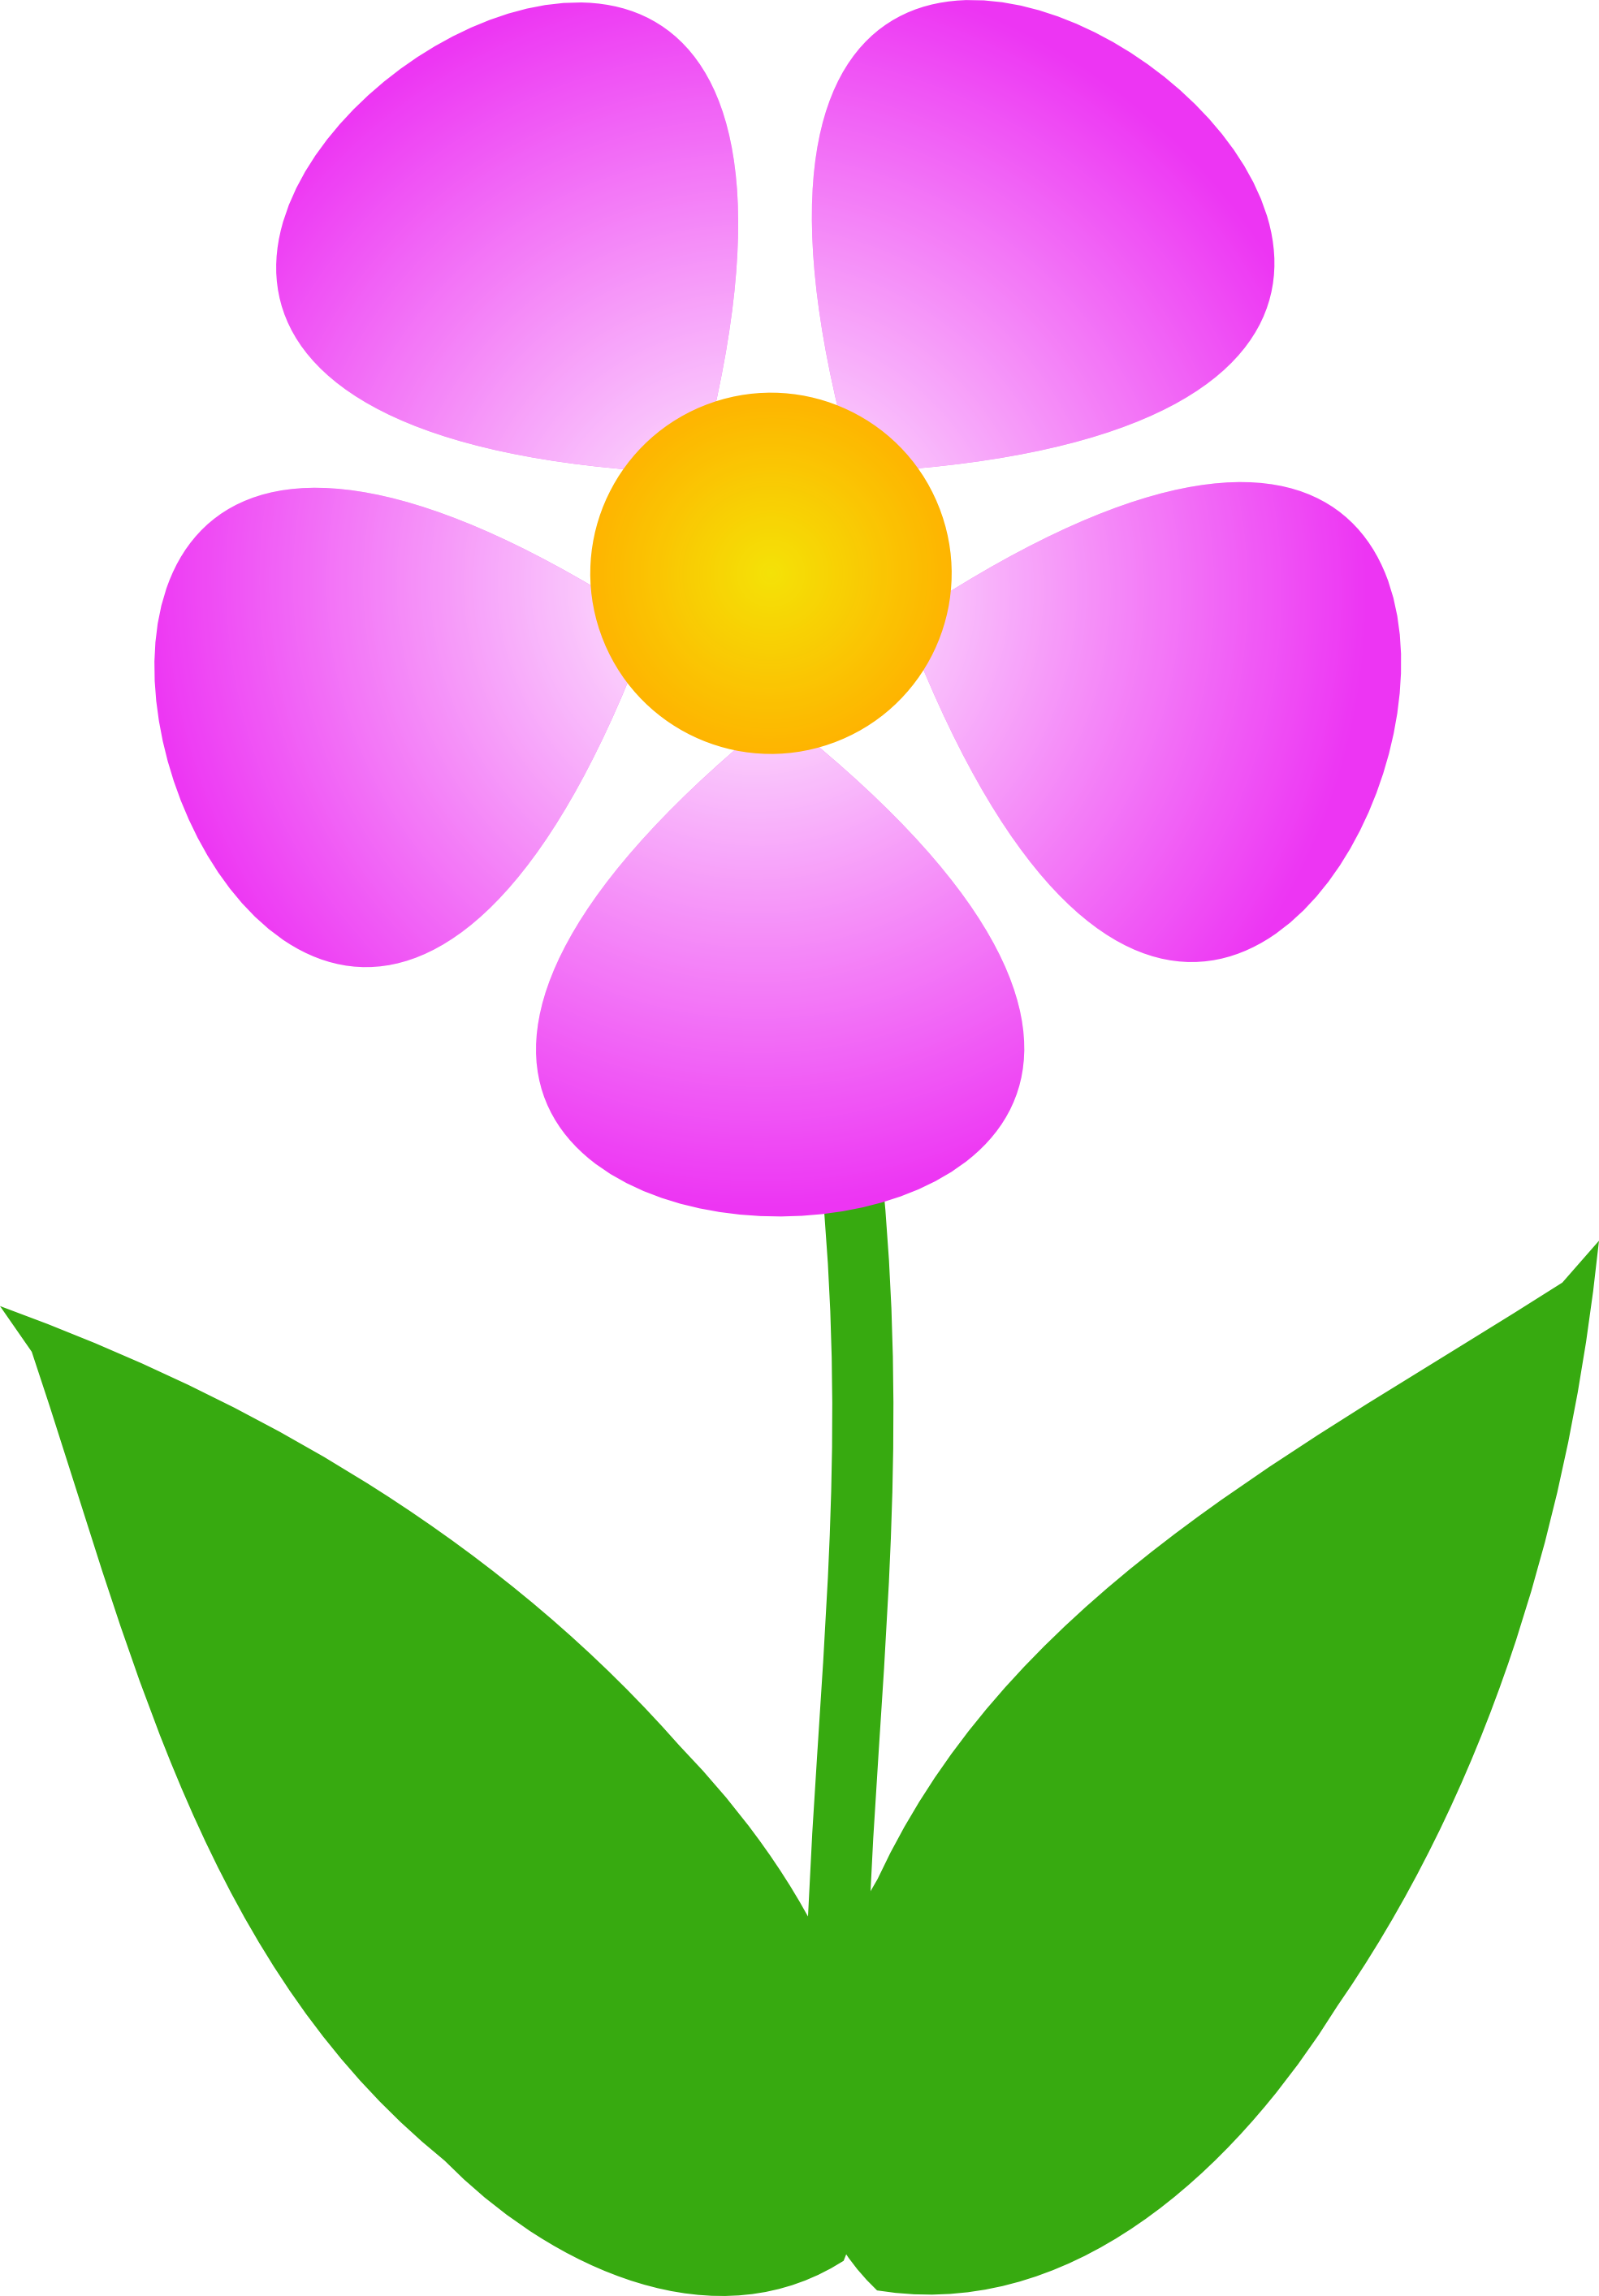 Free Clipart Images Of Flowers Flower Cl-Free clipart images of flowers flower clip art pictures image 1-16